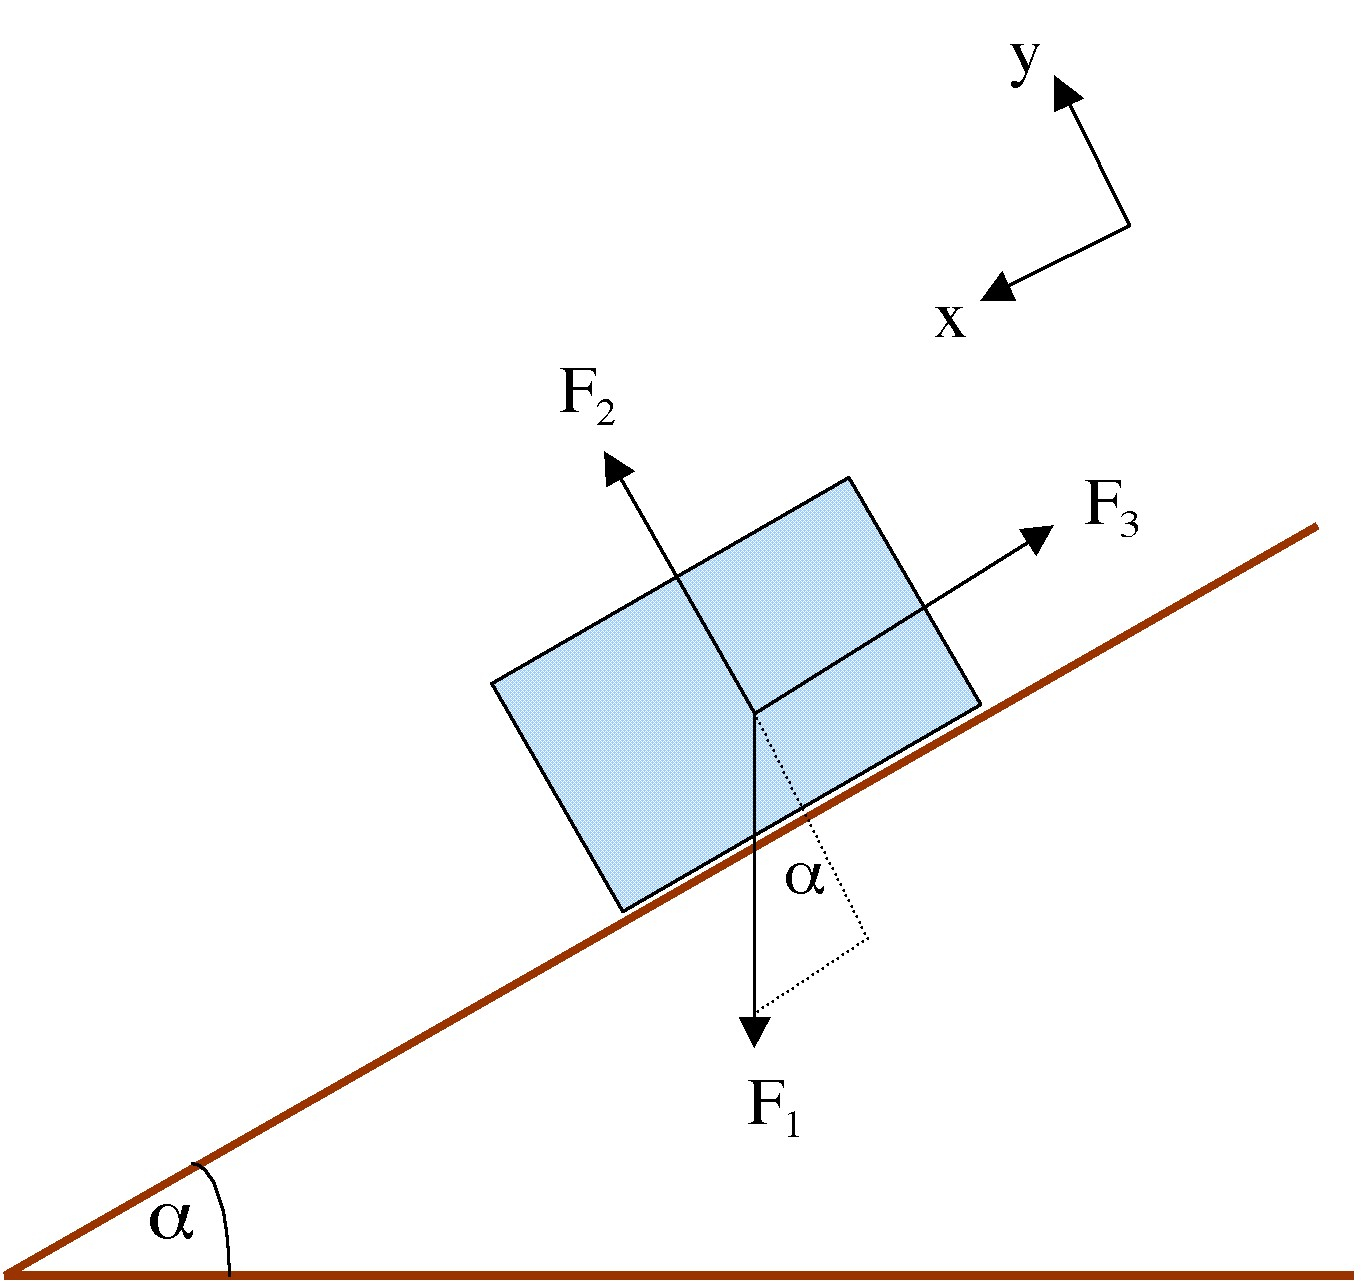 Free Body Diagrams Geometry How To Deduce This Free Body Diagram Physics Stack